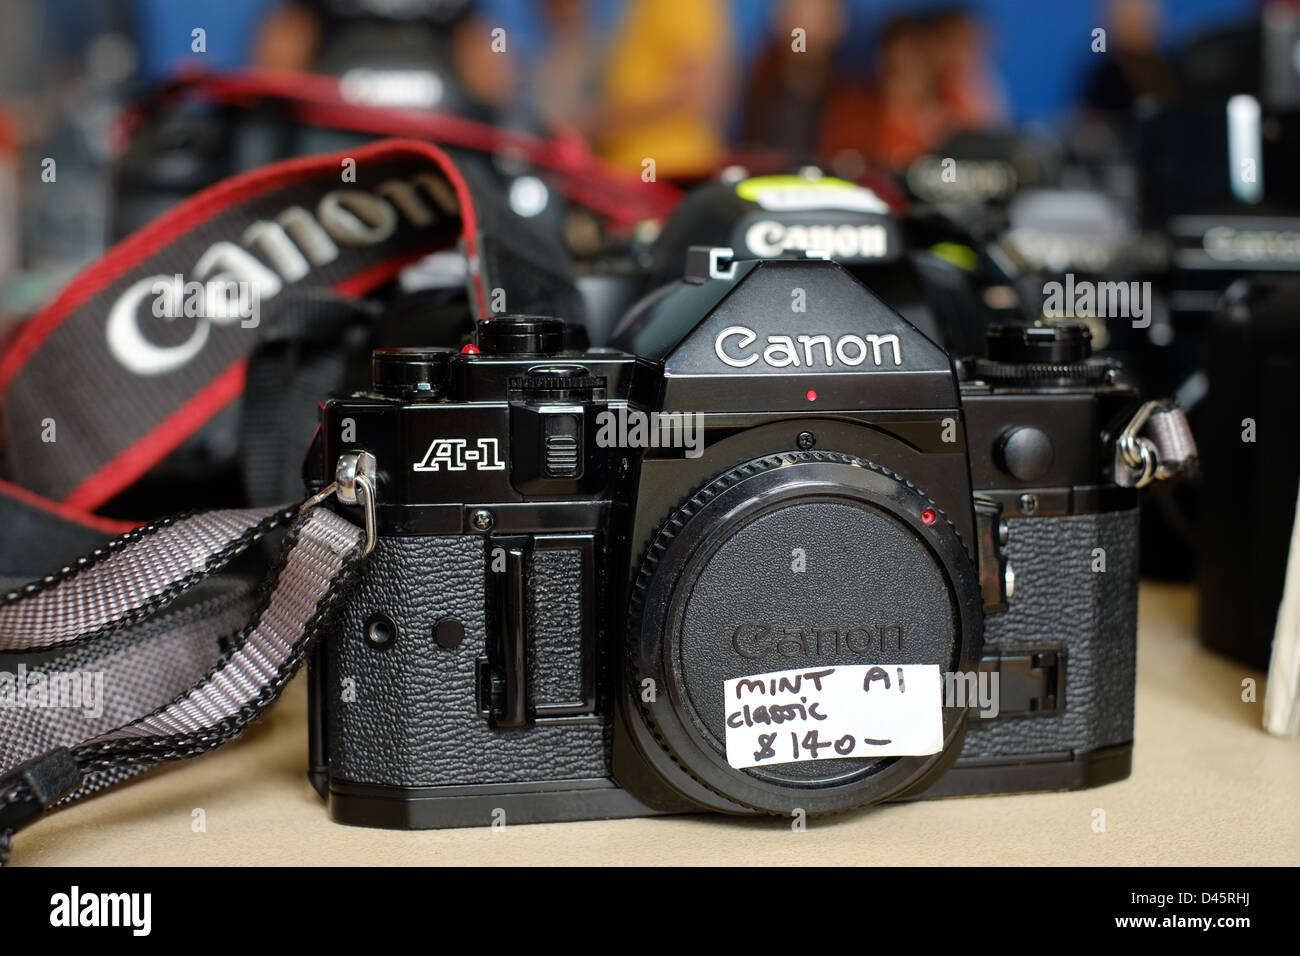 Vintage cameras for sale at a local Camera Market, Sydney. - Stock Image